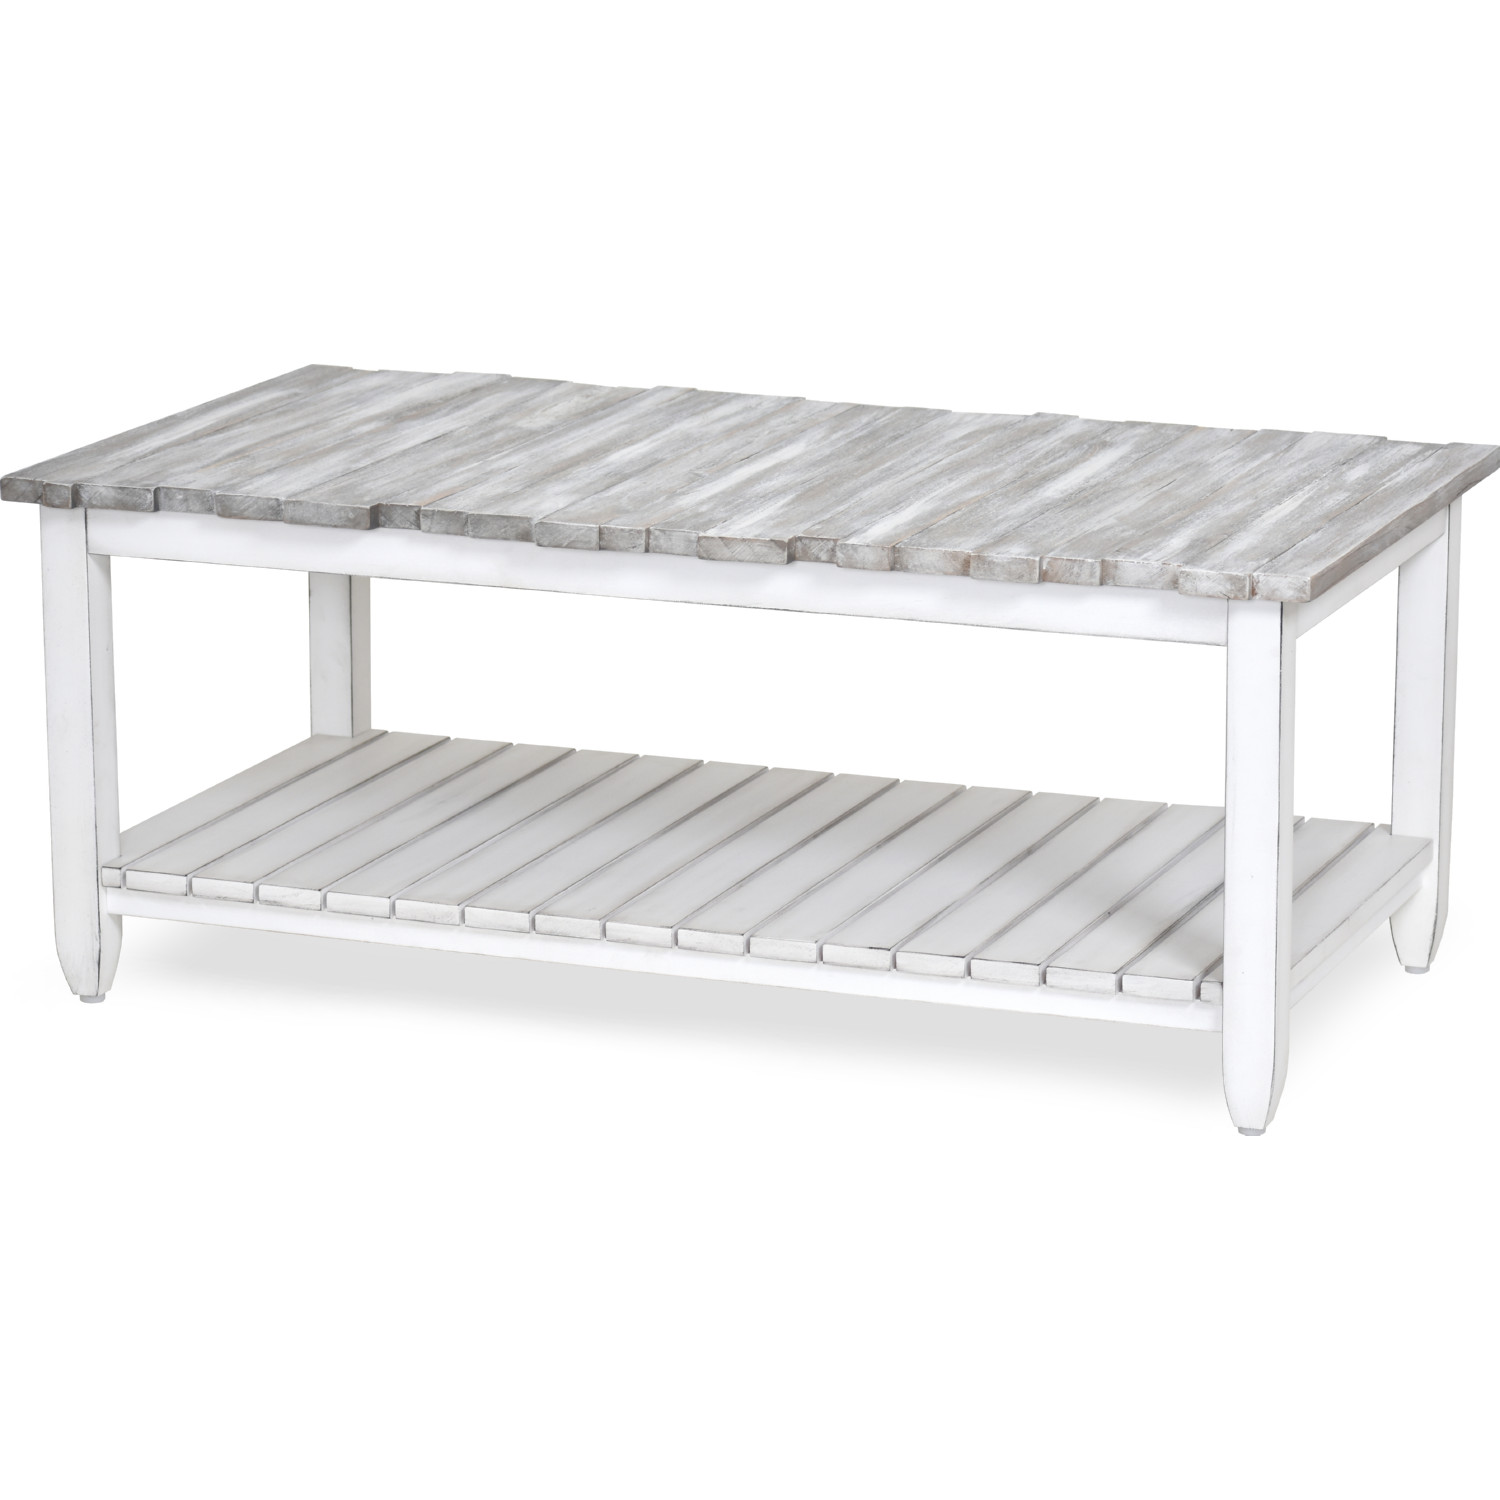 Distressed Gray Coffee Table.Picket Fence Coffee Table In Distressed Grey White By Sea Winds